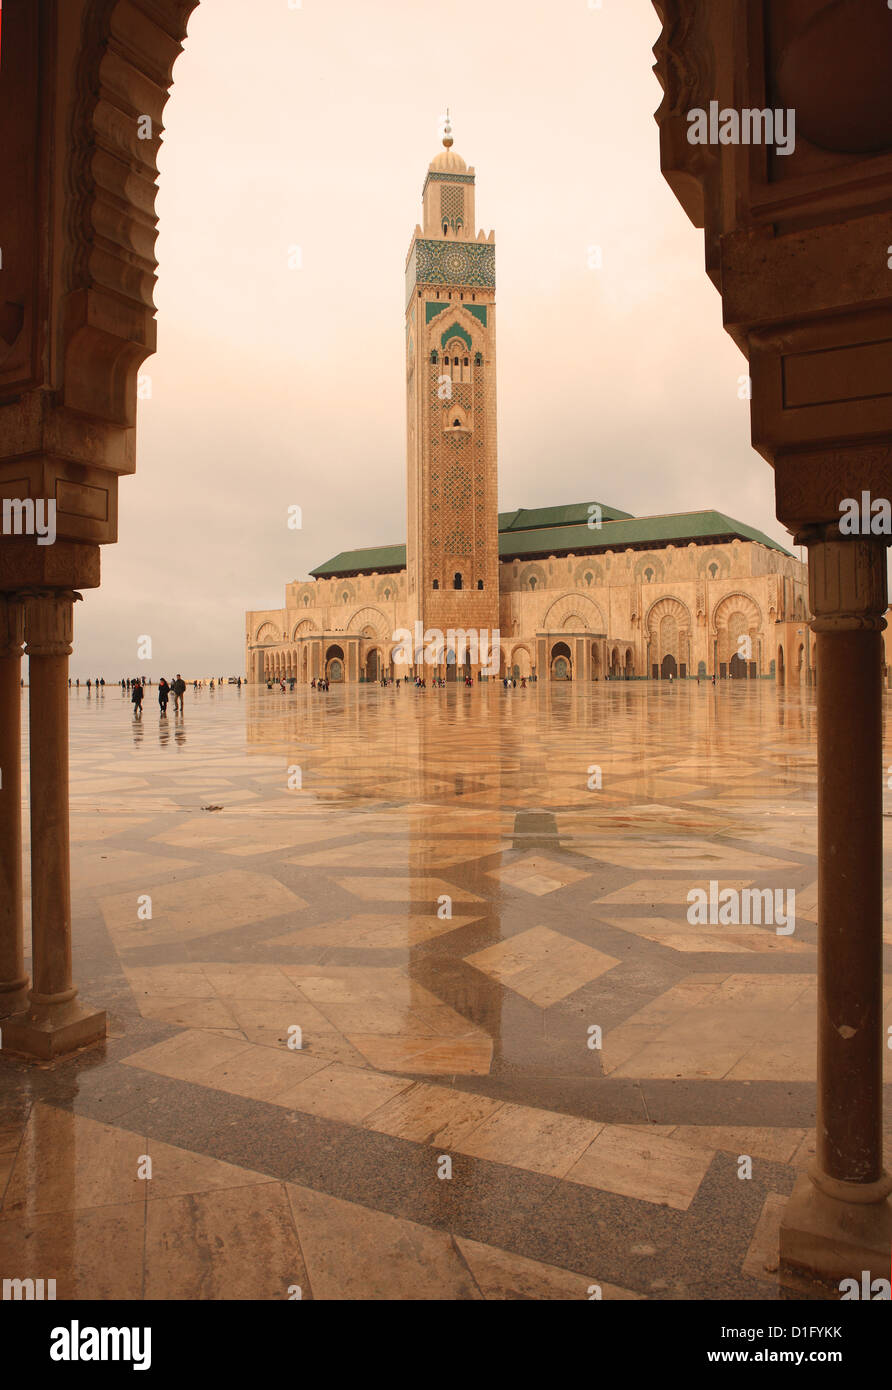 Hassan II Mosque through archway, Casablanca, Morocco, North Africa, Africa - Stock Image